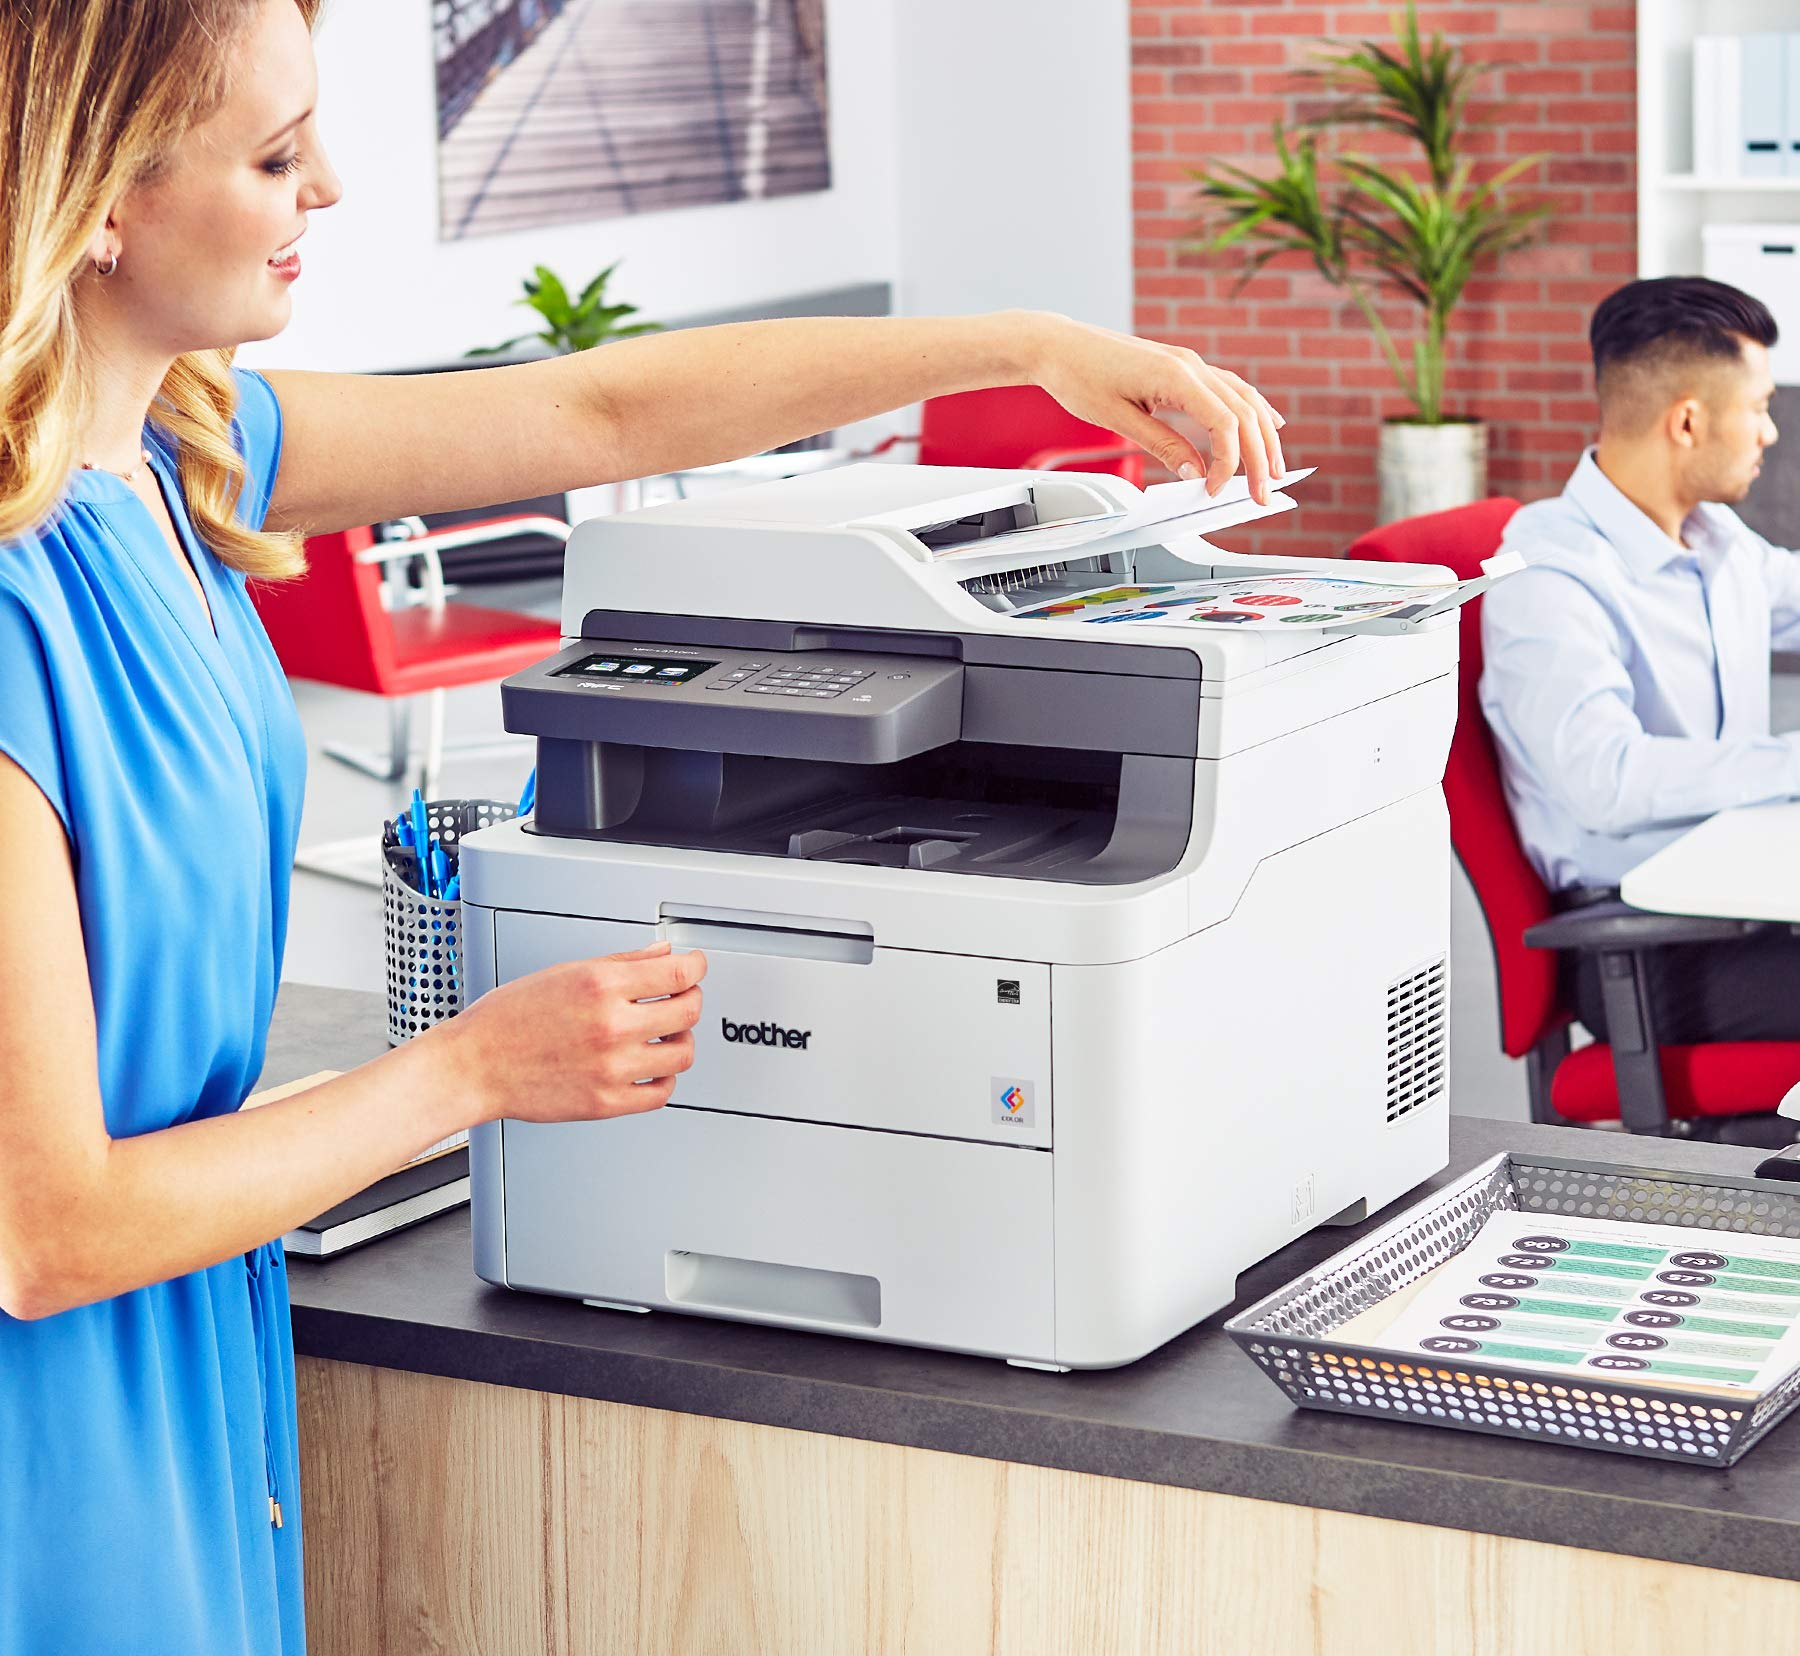 Brother MFC-L3710CW Compact Digital Color All-in-One Printer Providing Laser Printer Quality Results with Wireless, Amazon Dash Replenishment Enabled by Brother (Image #3)